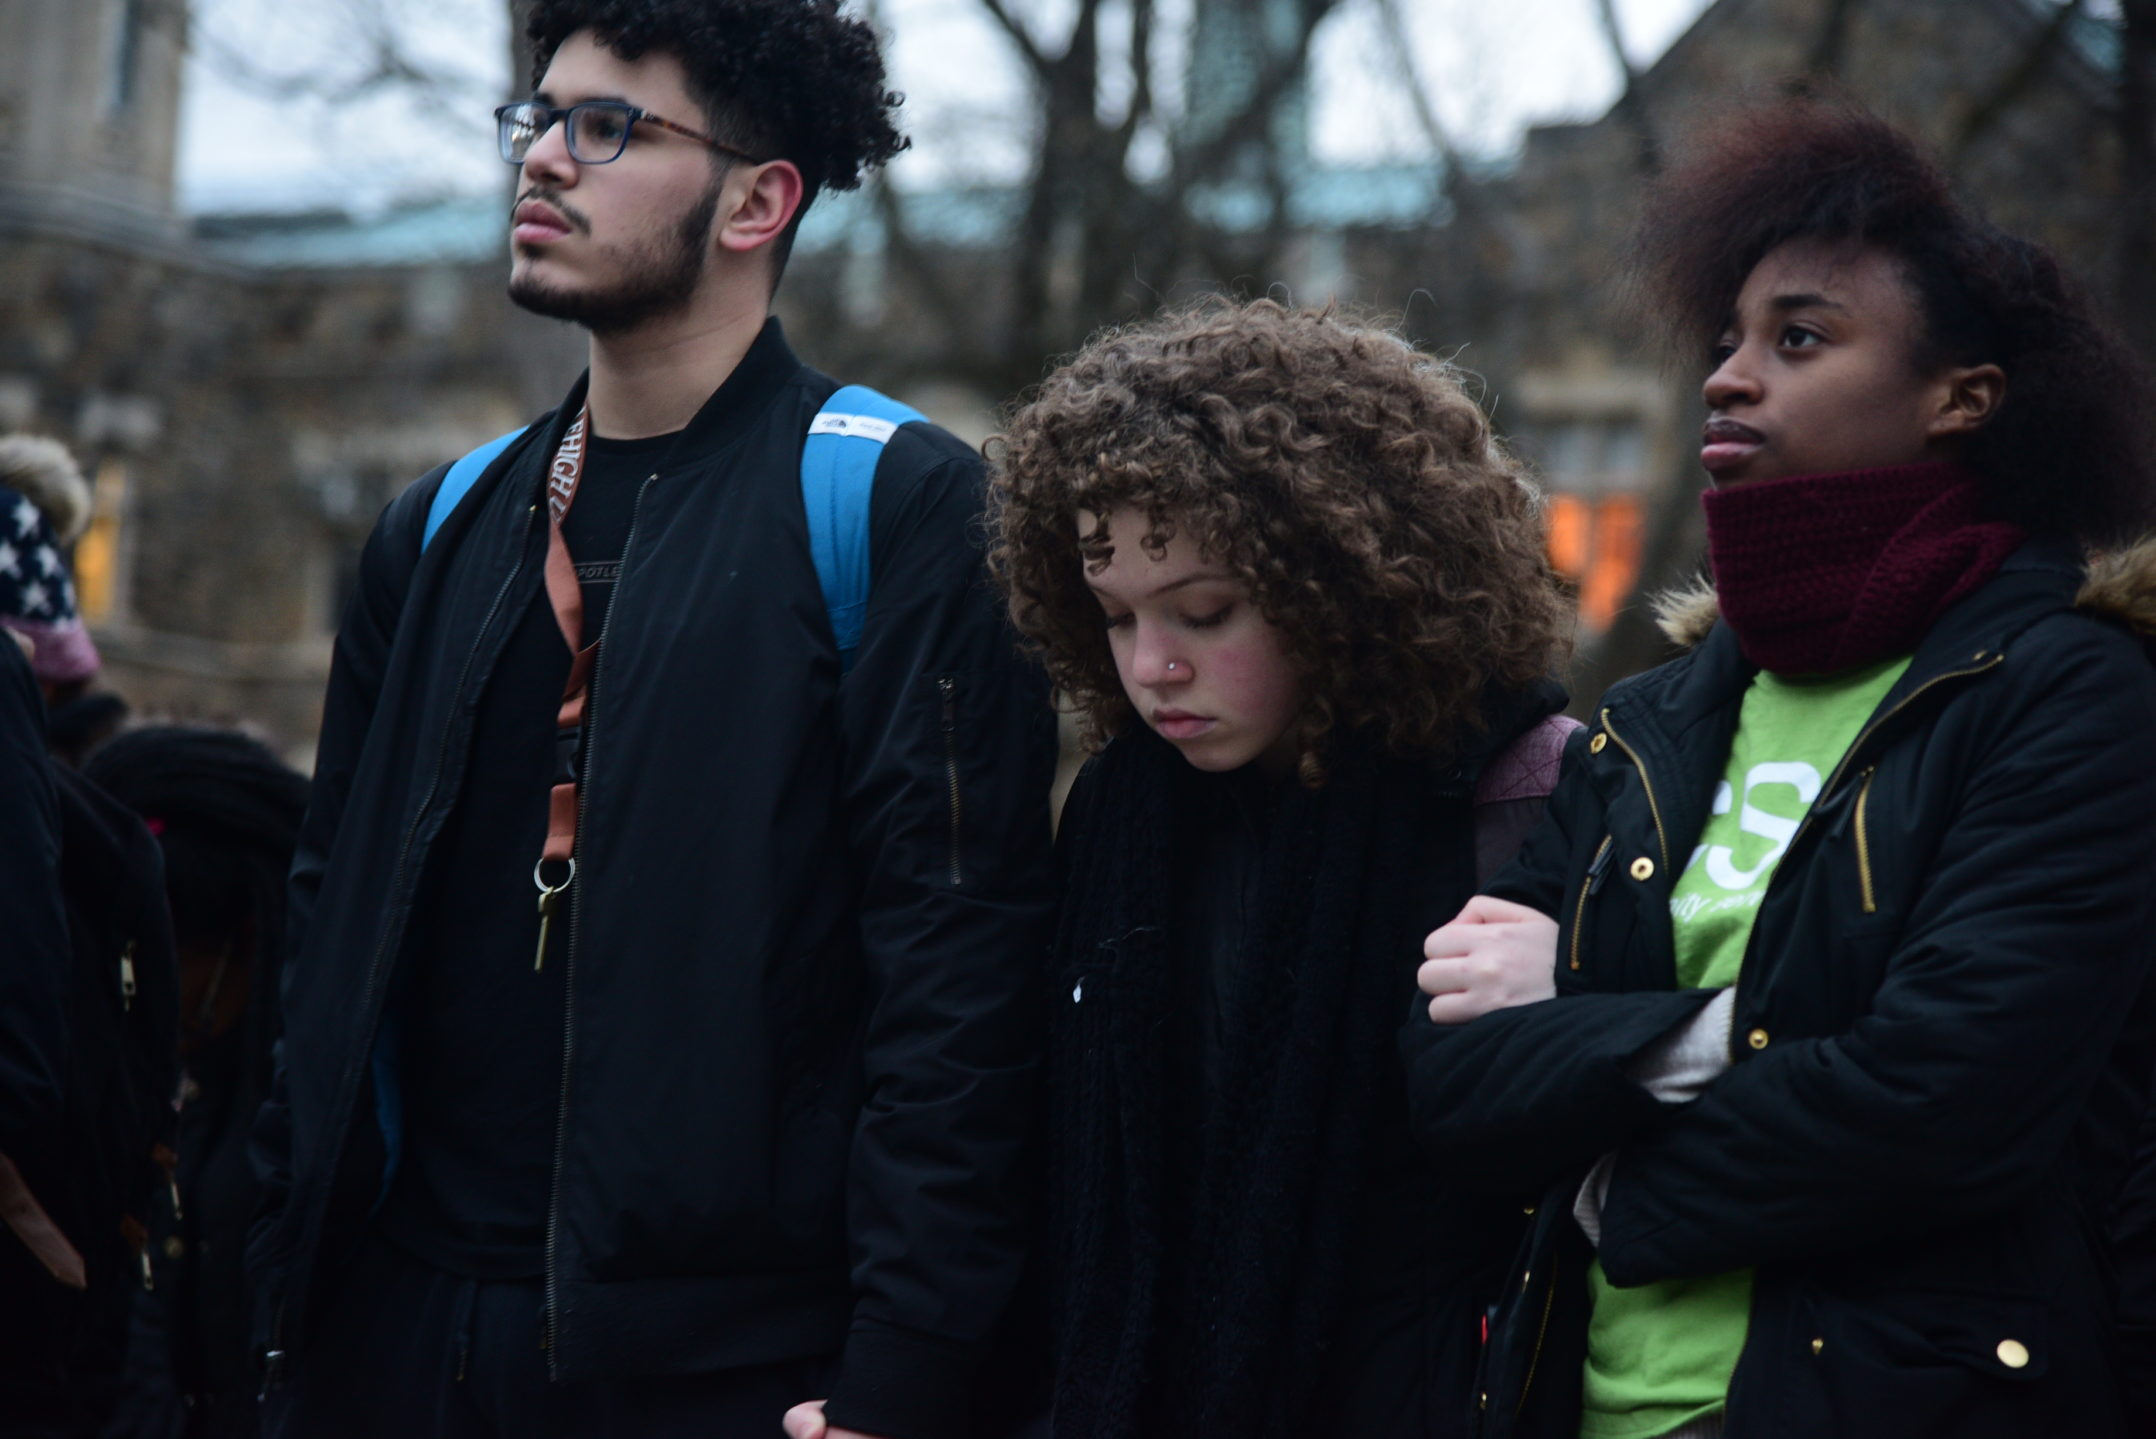 Martin Fernandez, '20, Massiel Checo, '20, and A'Taja Jackson listen to the speaker at the rally. During the rally members of the Lehigh community voiced their stories and opinions on immigration. (Ashley Omoma/B&W Staff)